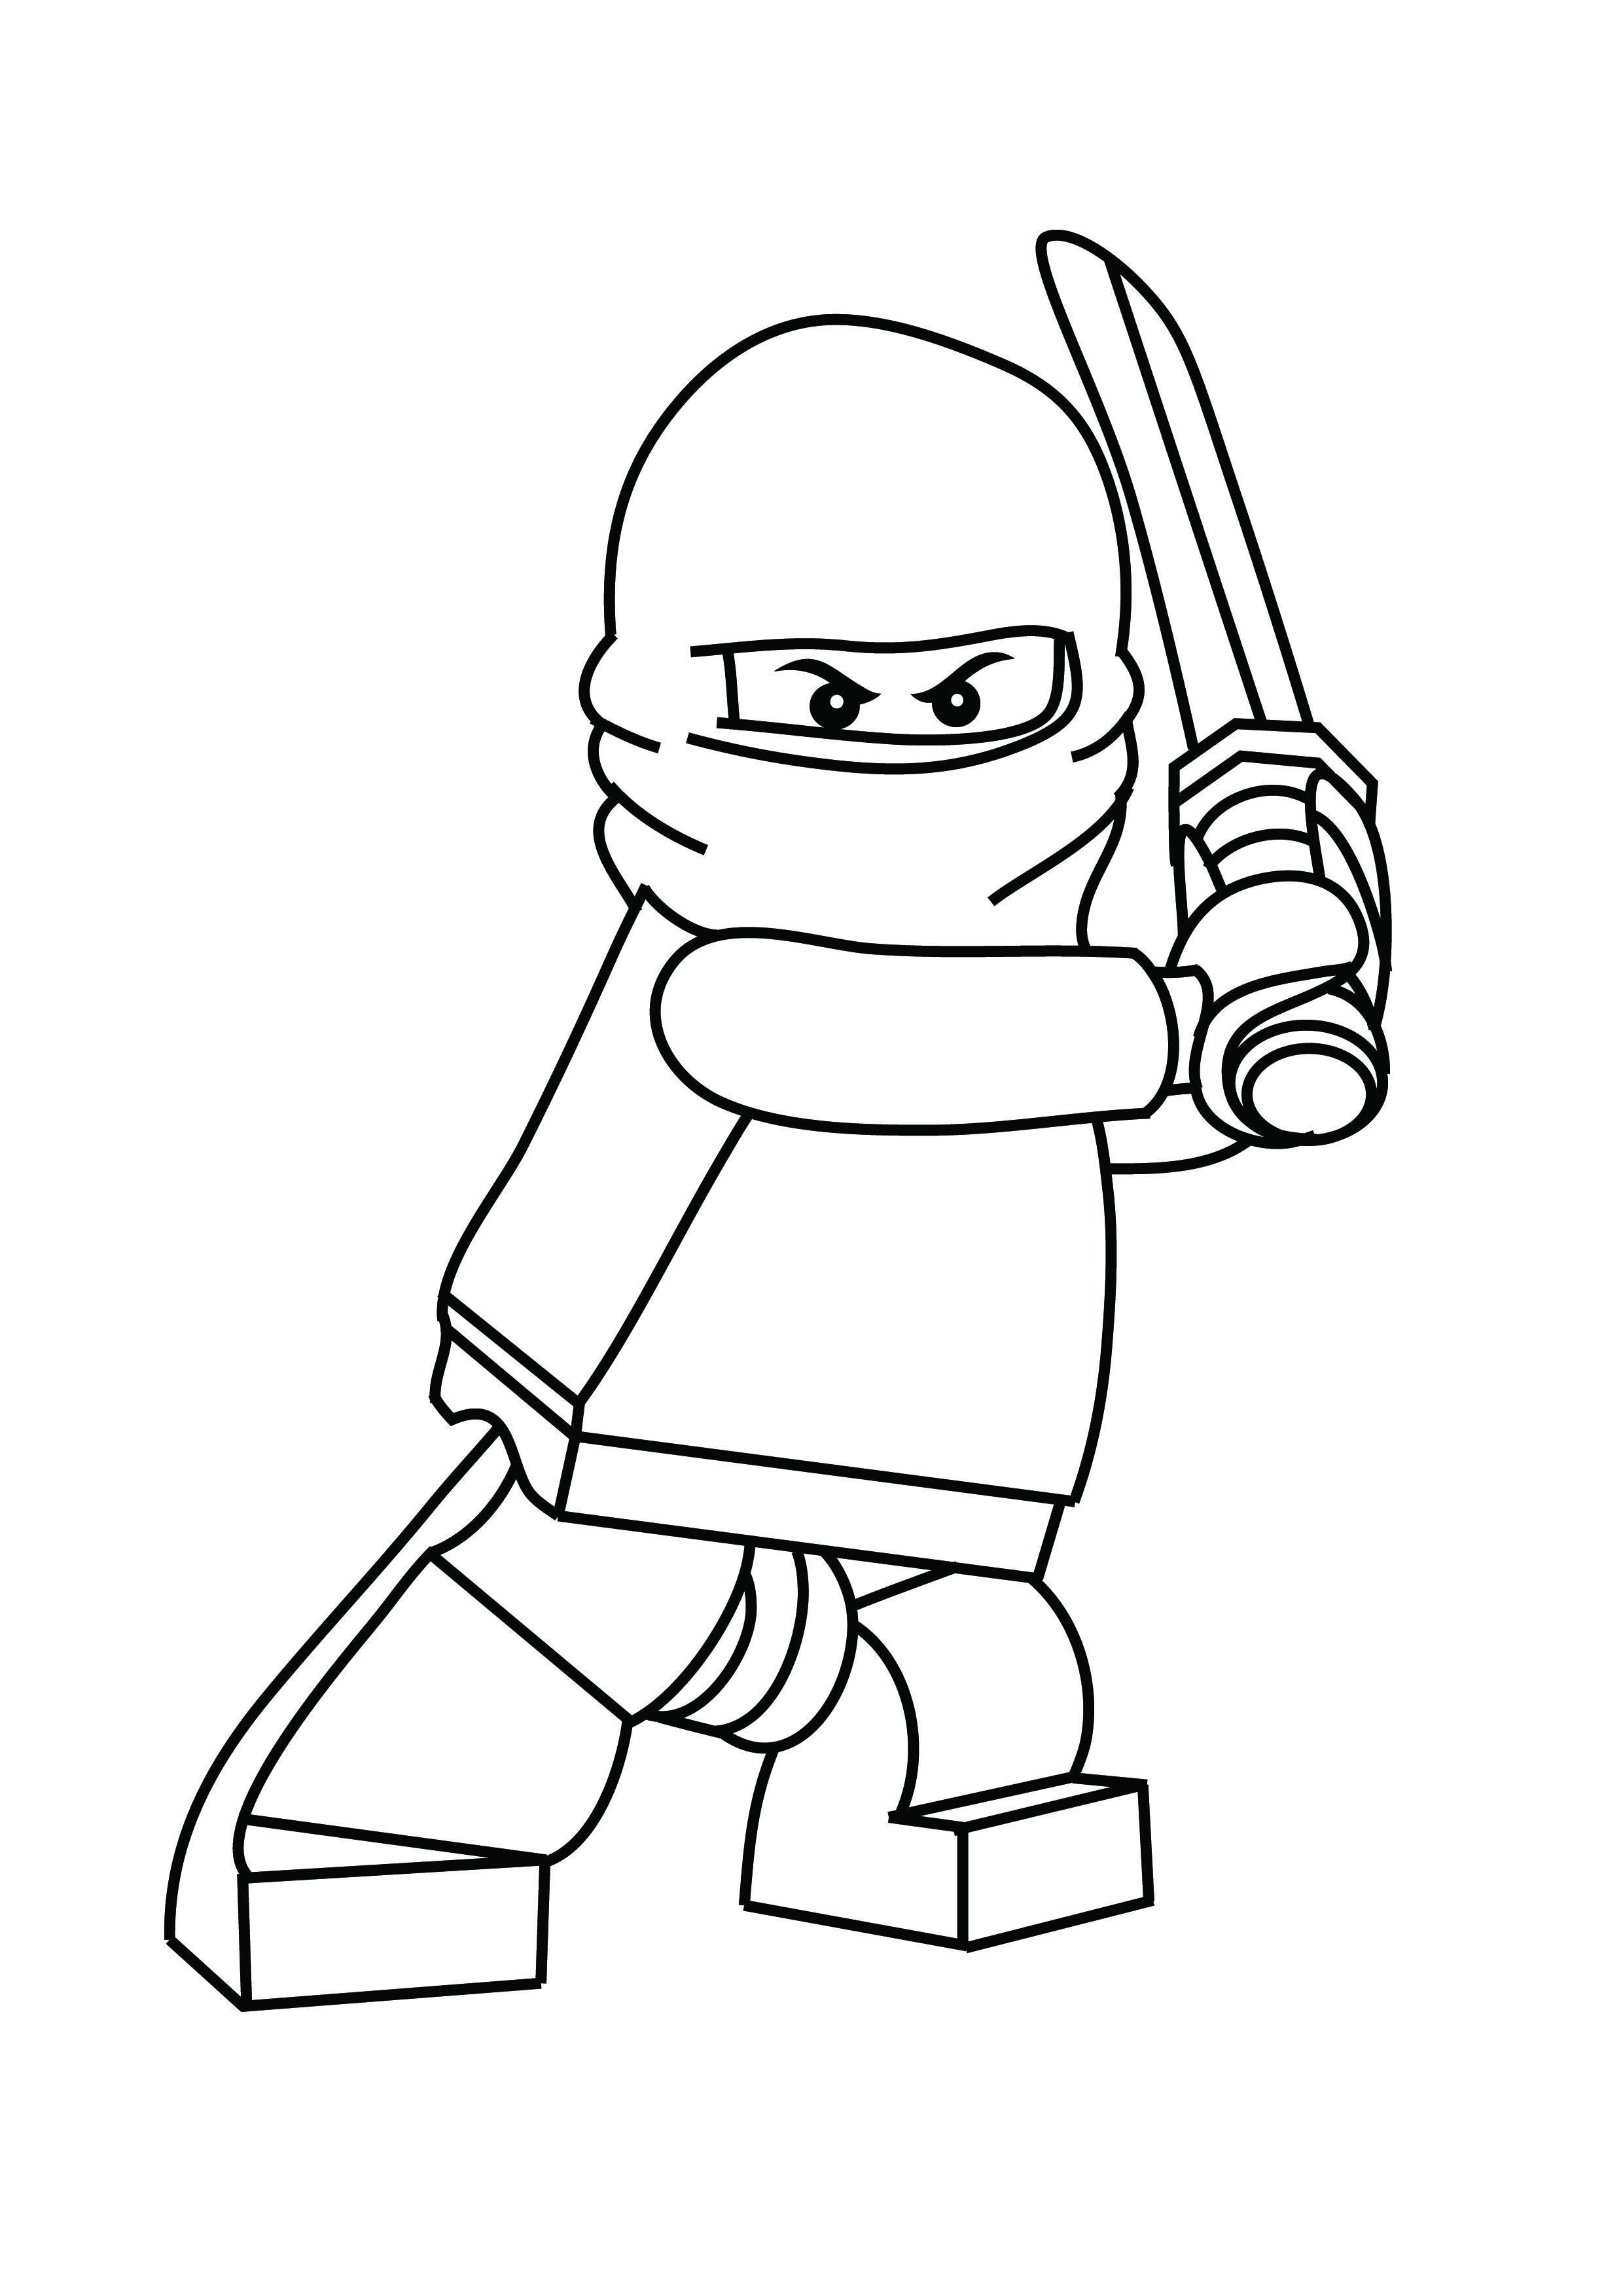 Lego figure printable clipart best